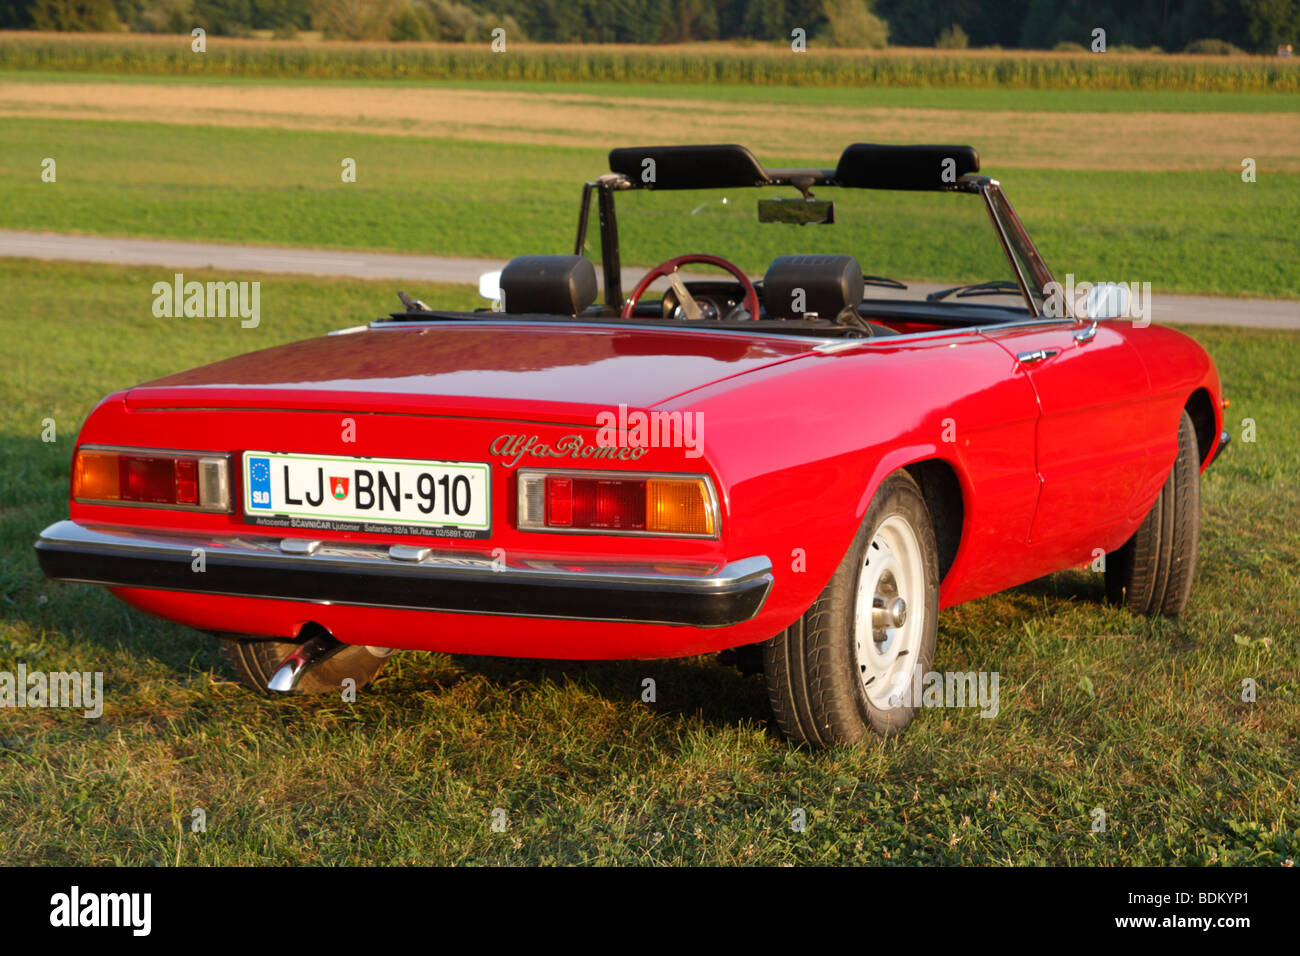 Alfa Romeo Spider 1600 Junior sports car. Year of